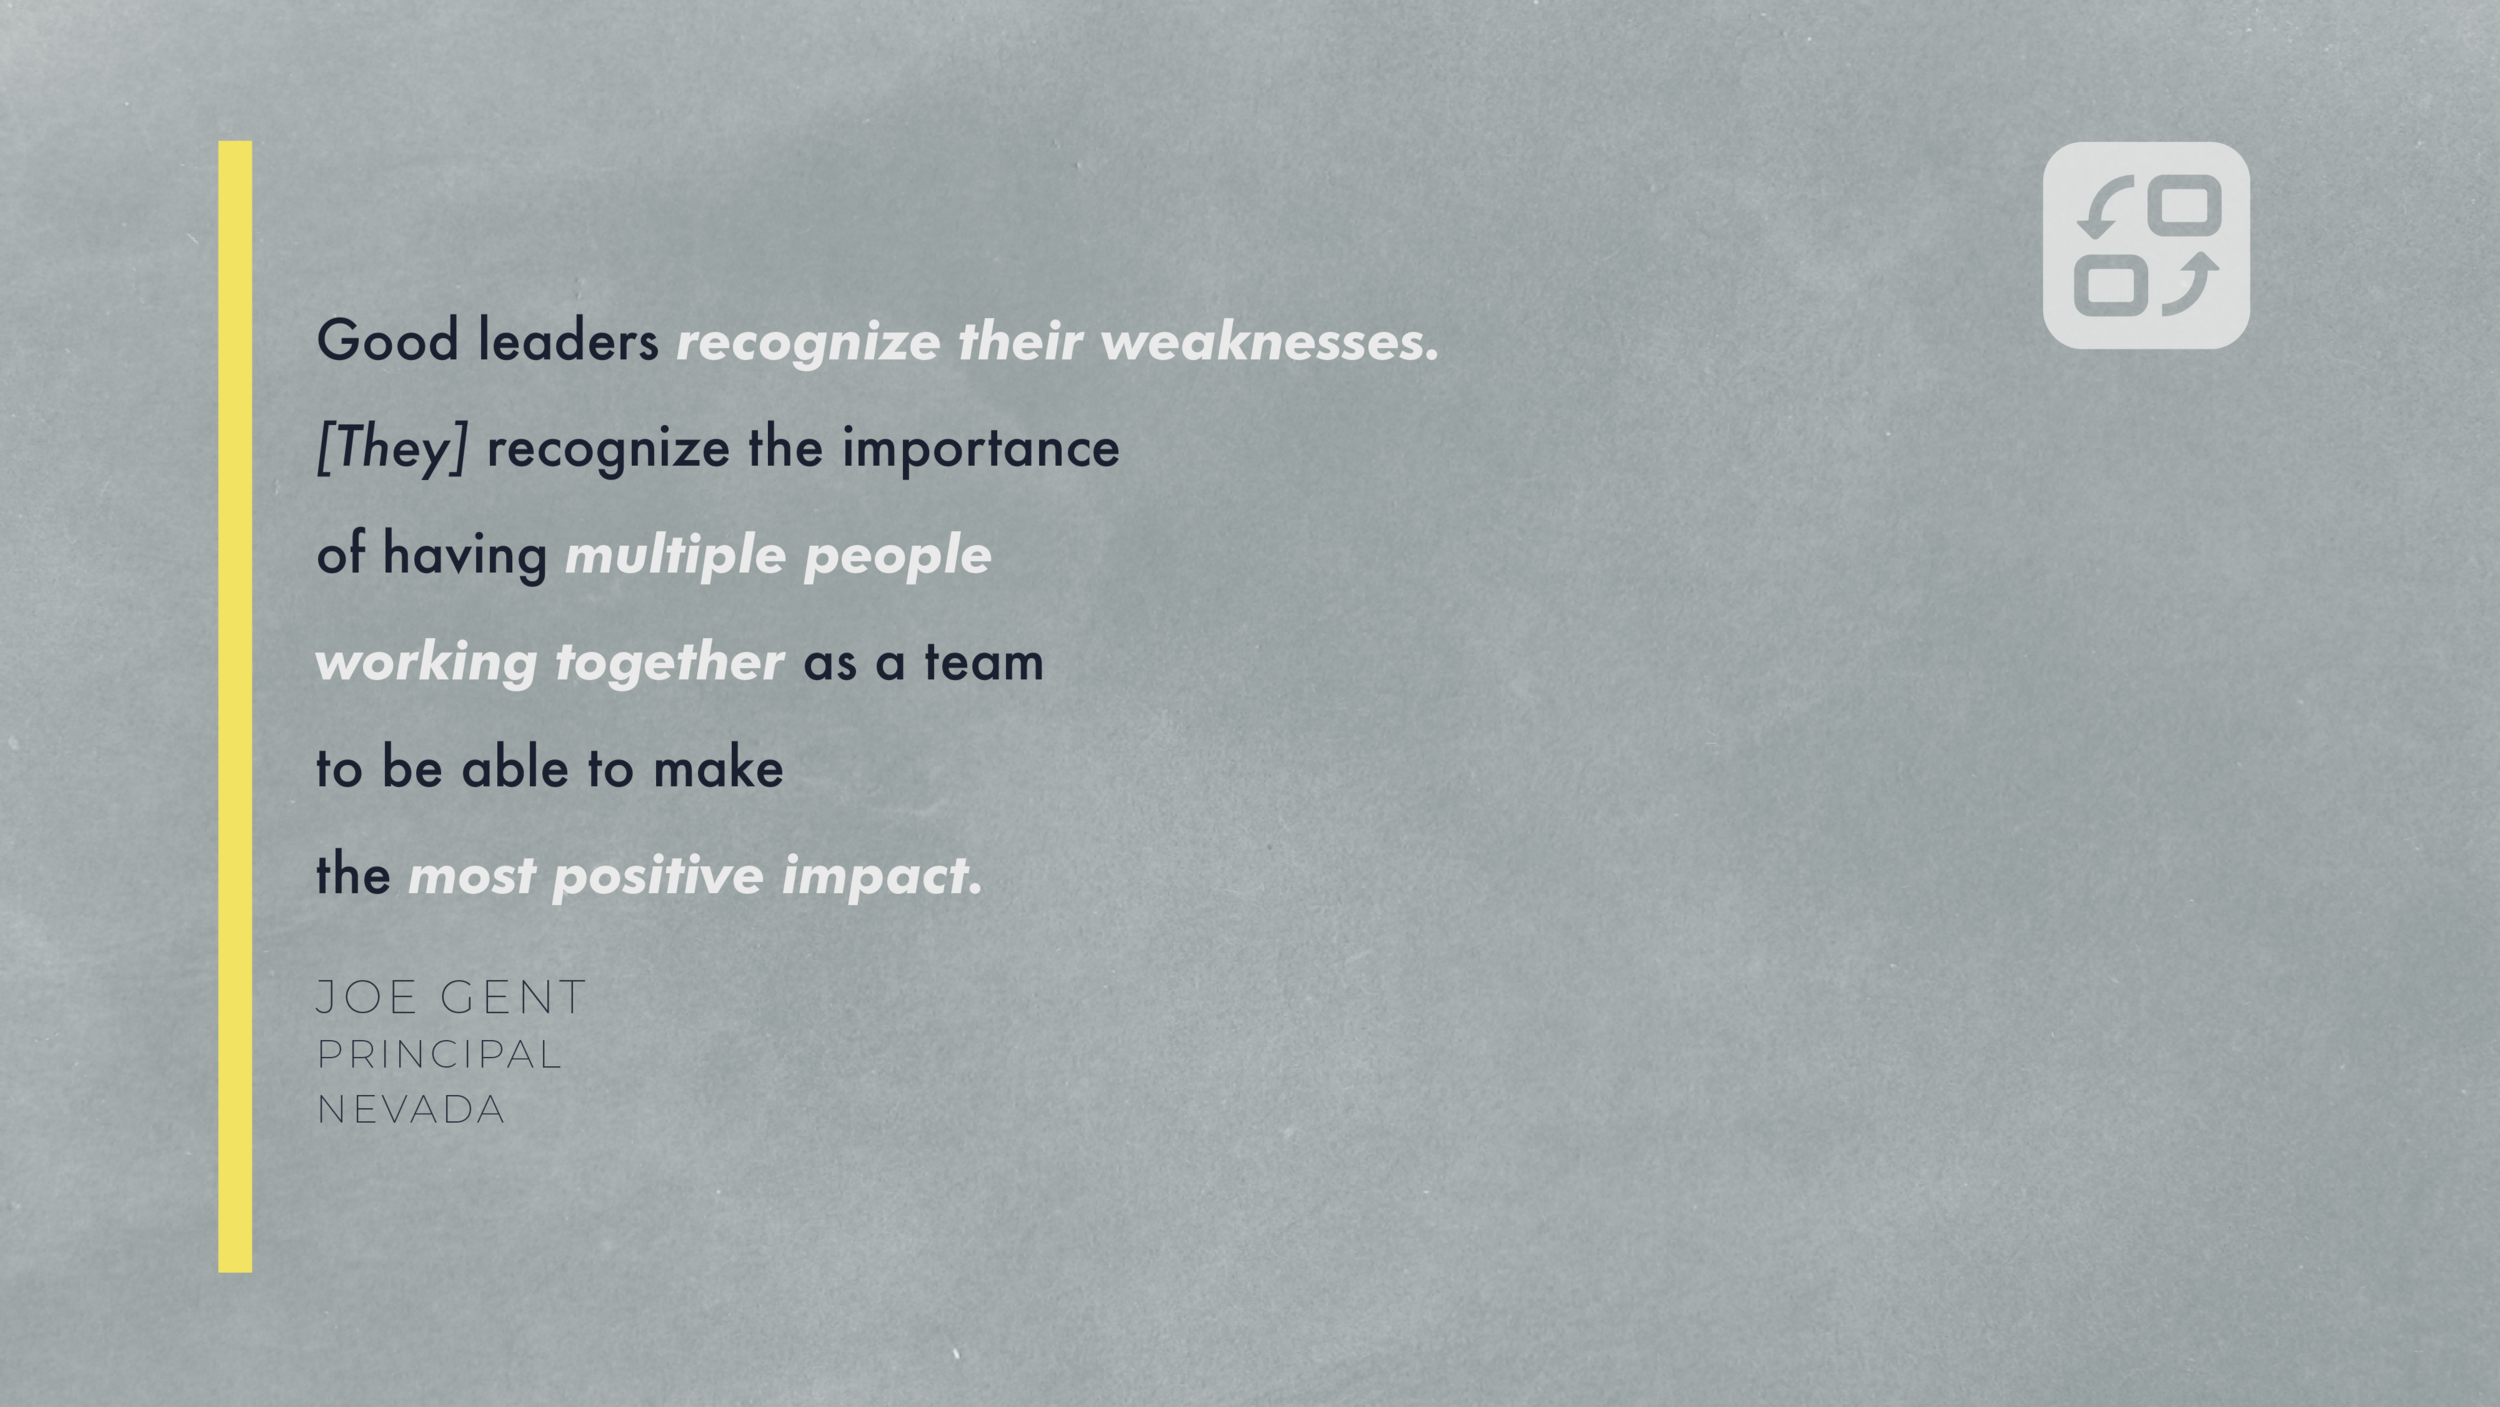 idc-ed-first-quotes-distributed-leadership-02.png